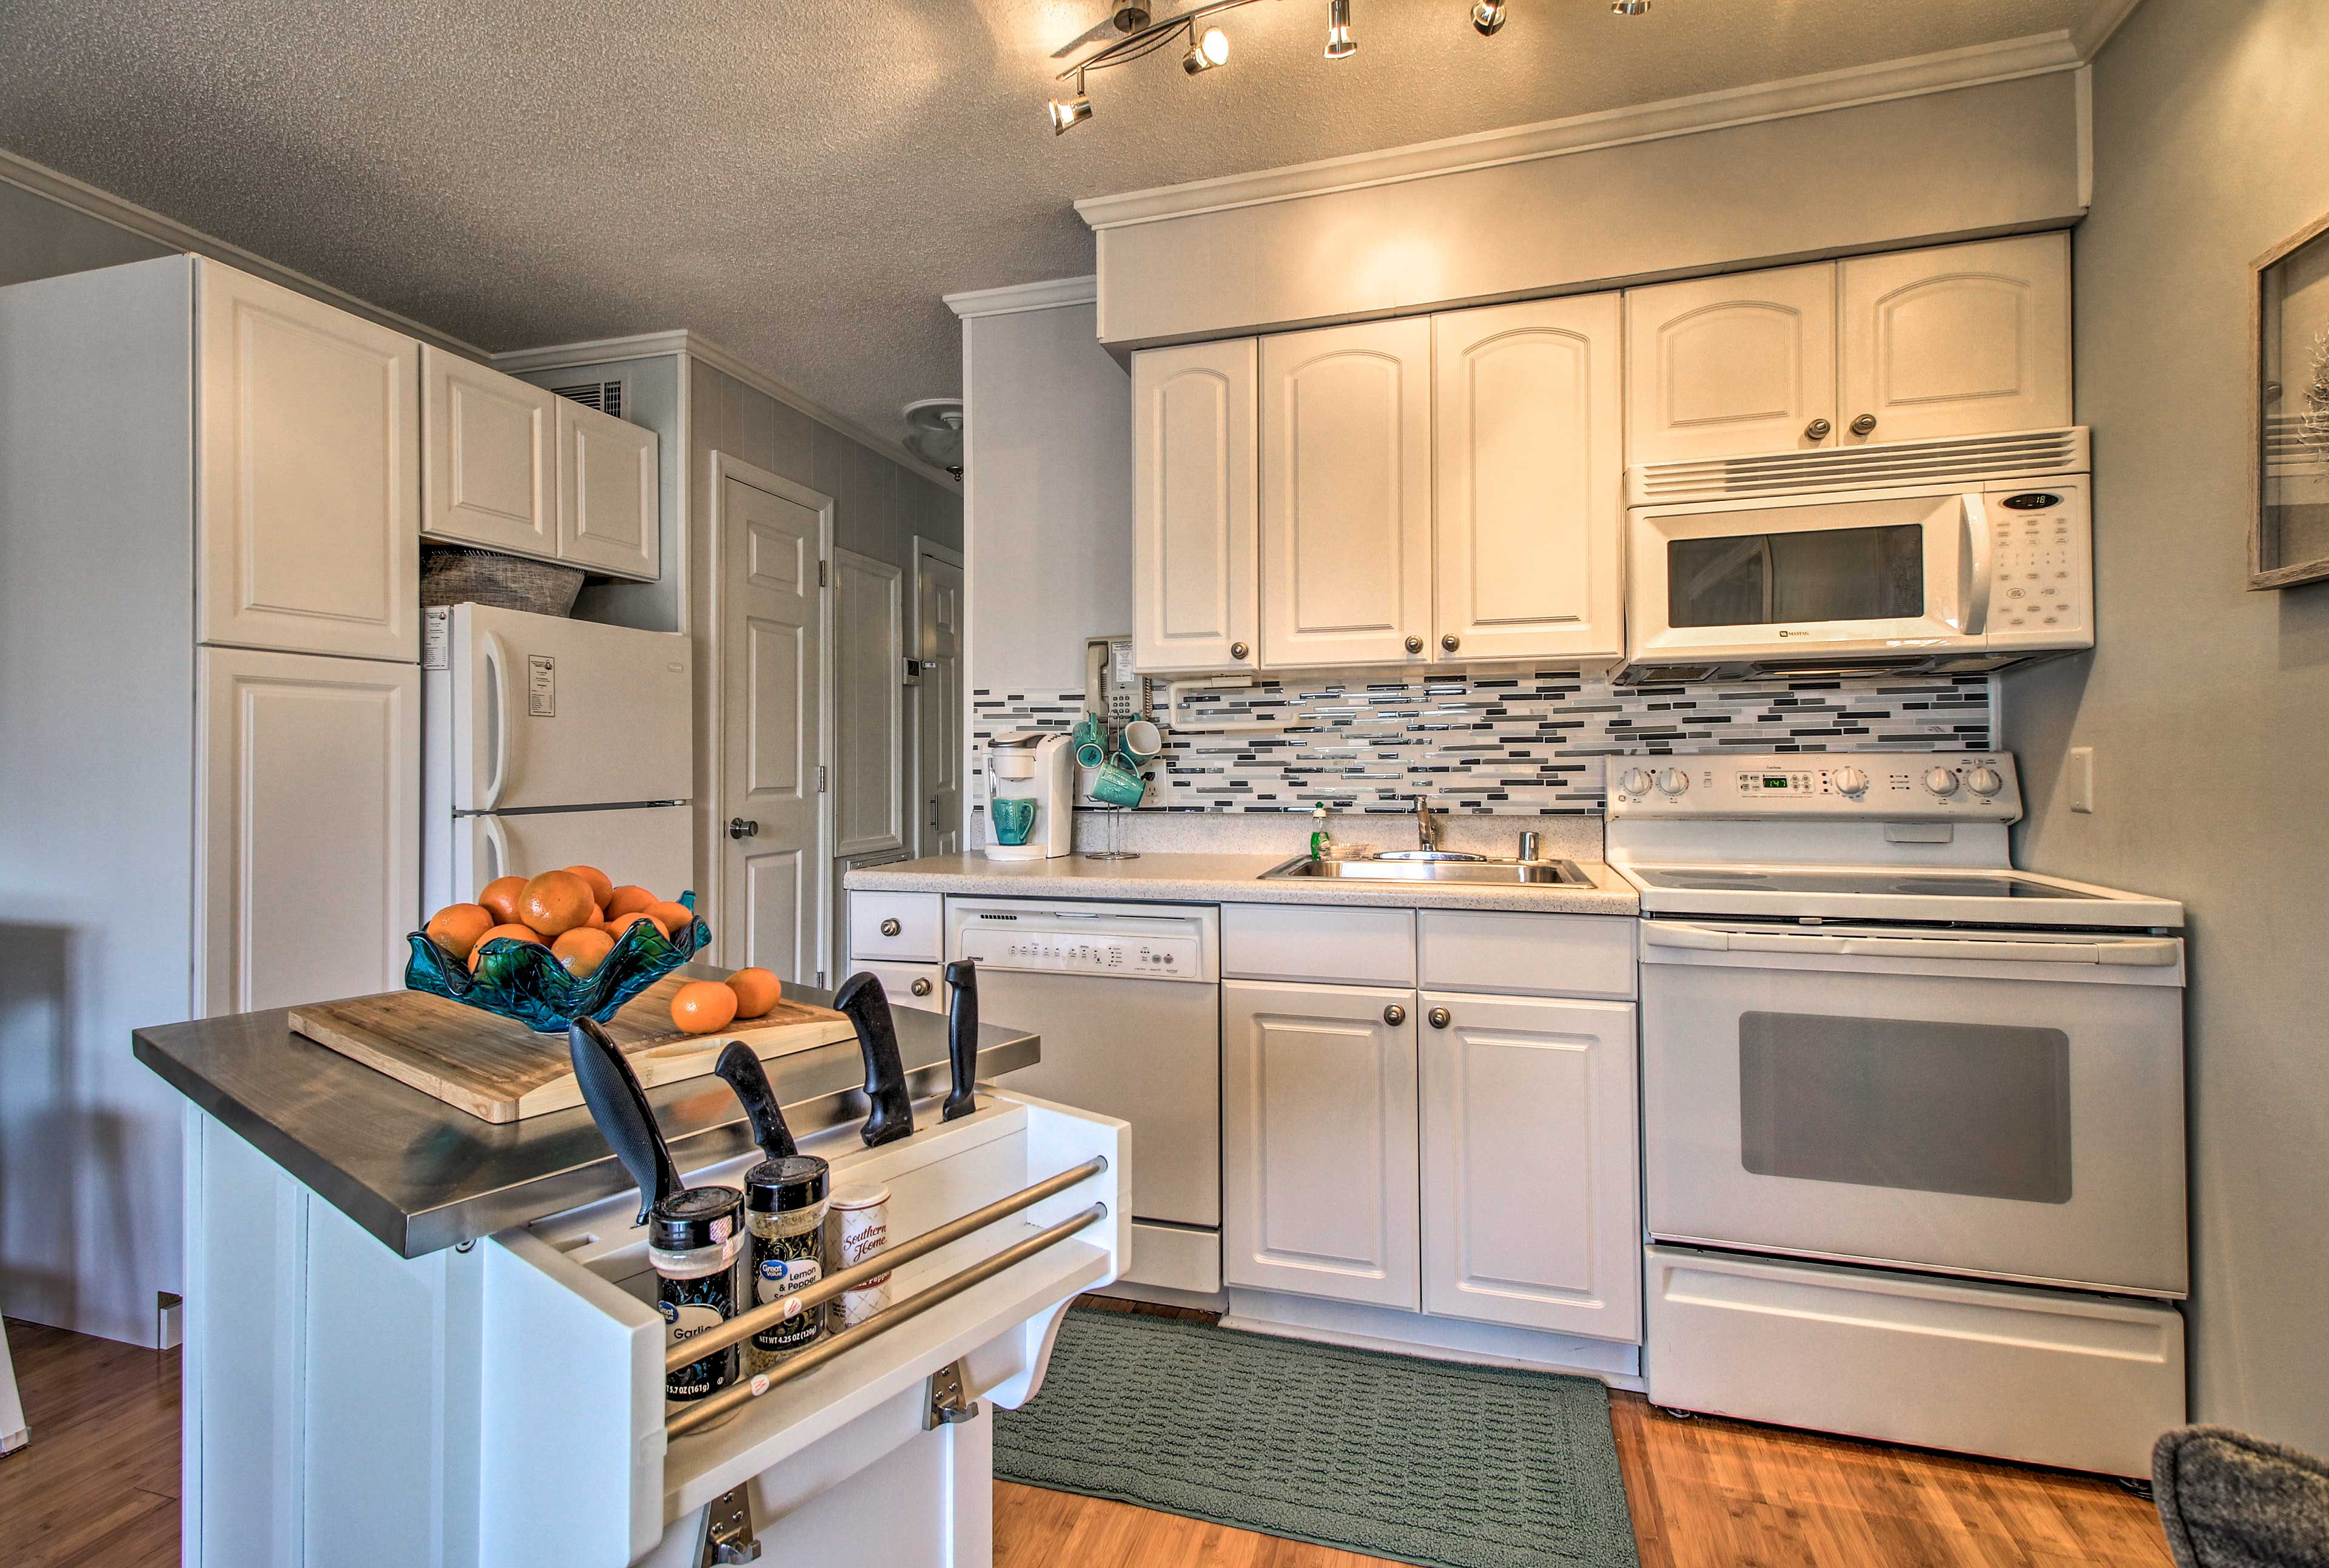 This kitchen is complete with all of the culinary essentials of home.